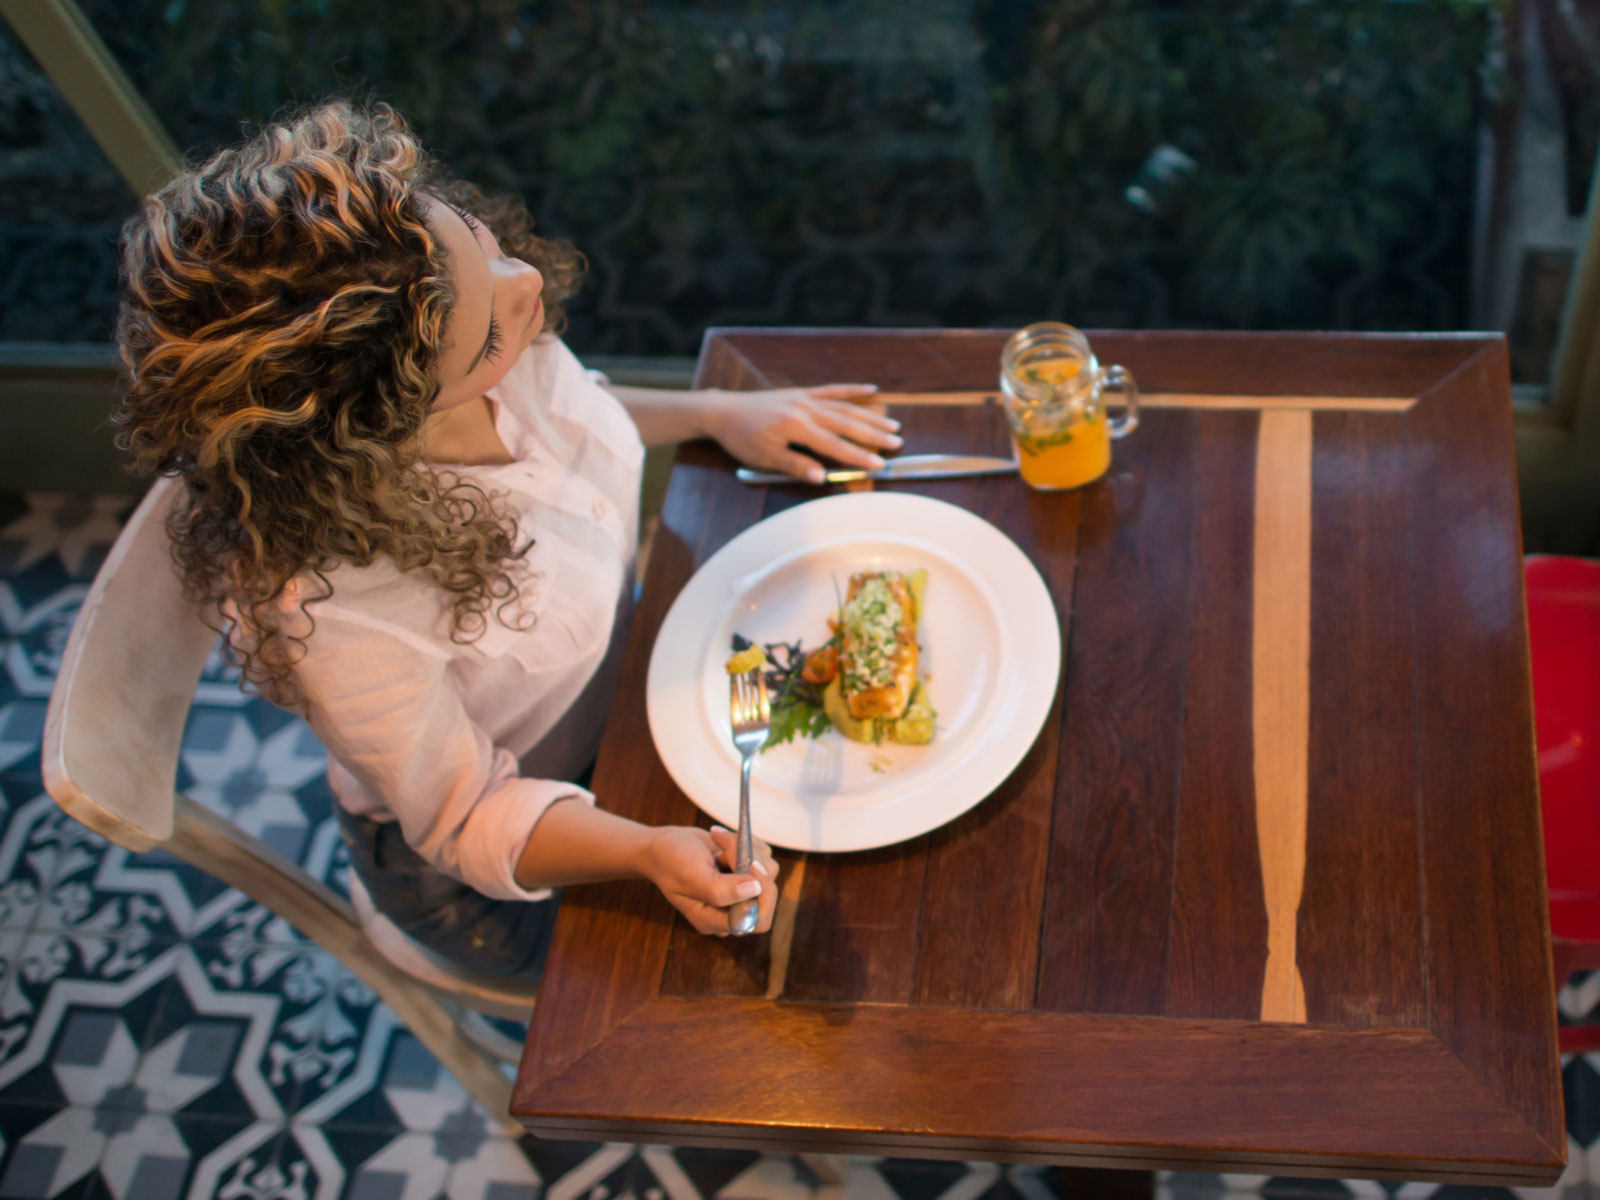 Tables-for-One on Valentine's Day Is a Growing Trend, According to OpenTable